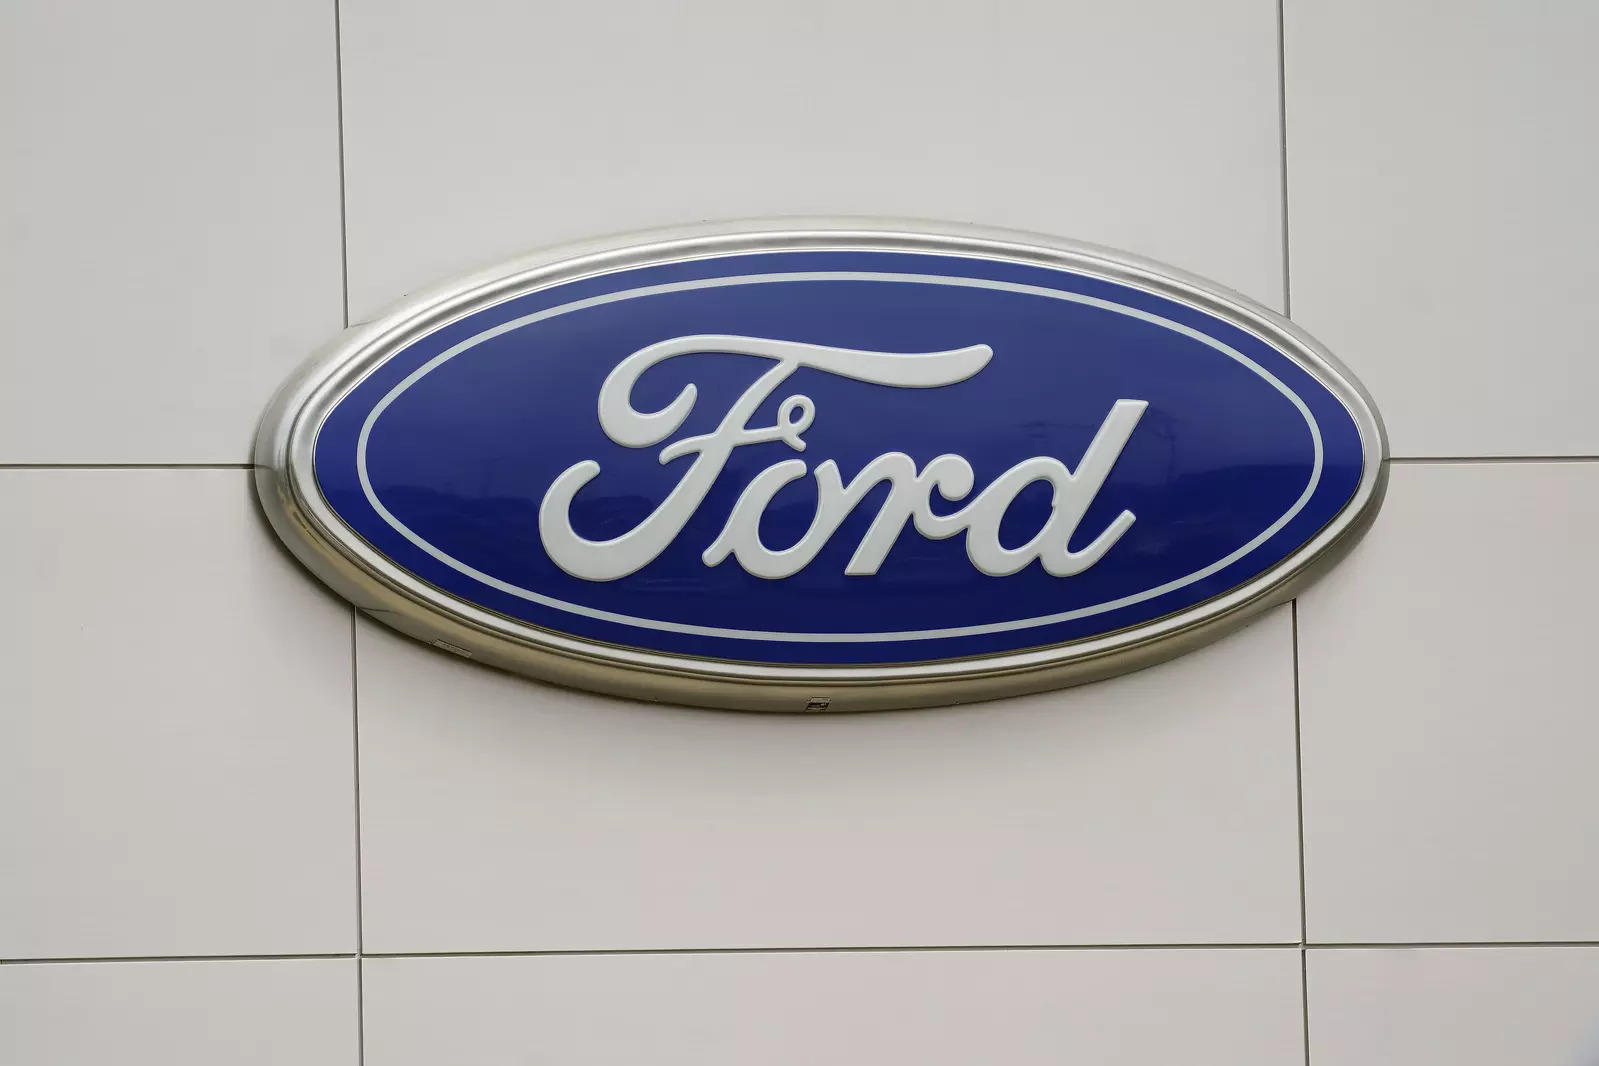 According to Union officials, Ford India's Chennai plant has about 2,700 associates (permanent workers) and about 600 staff.